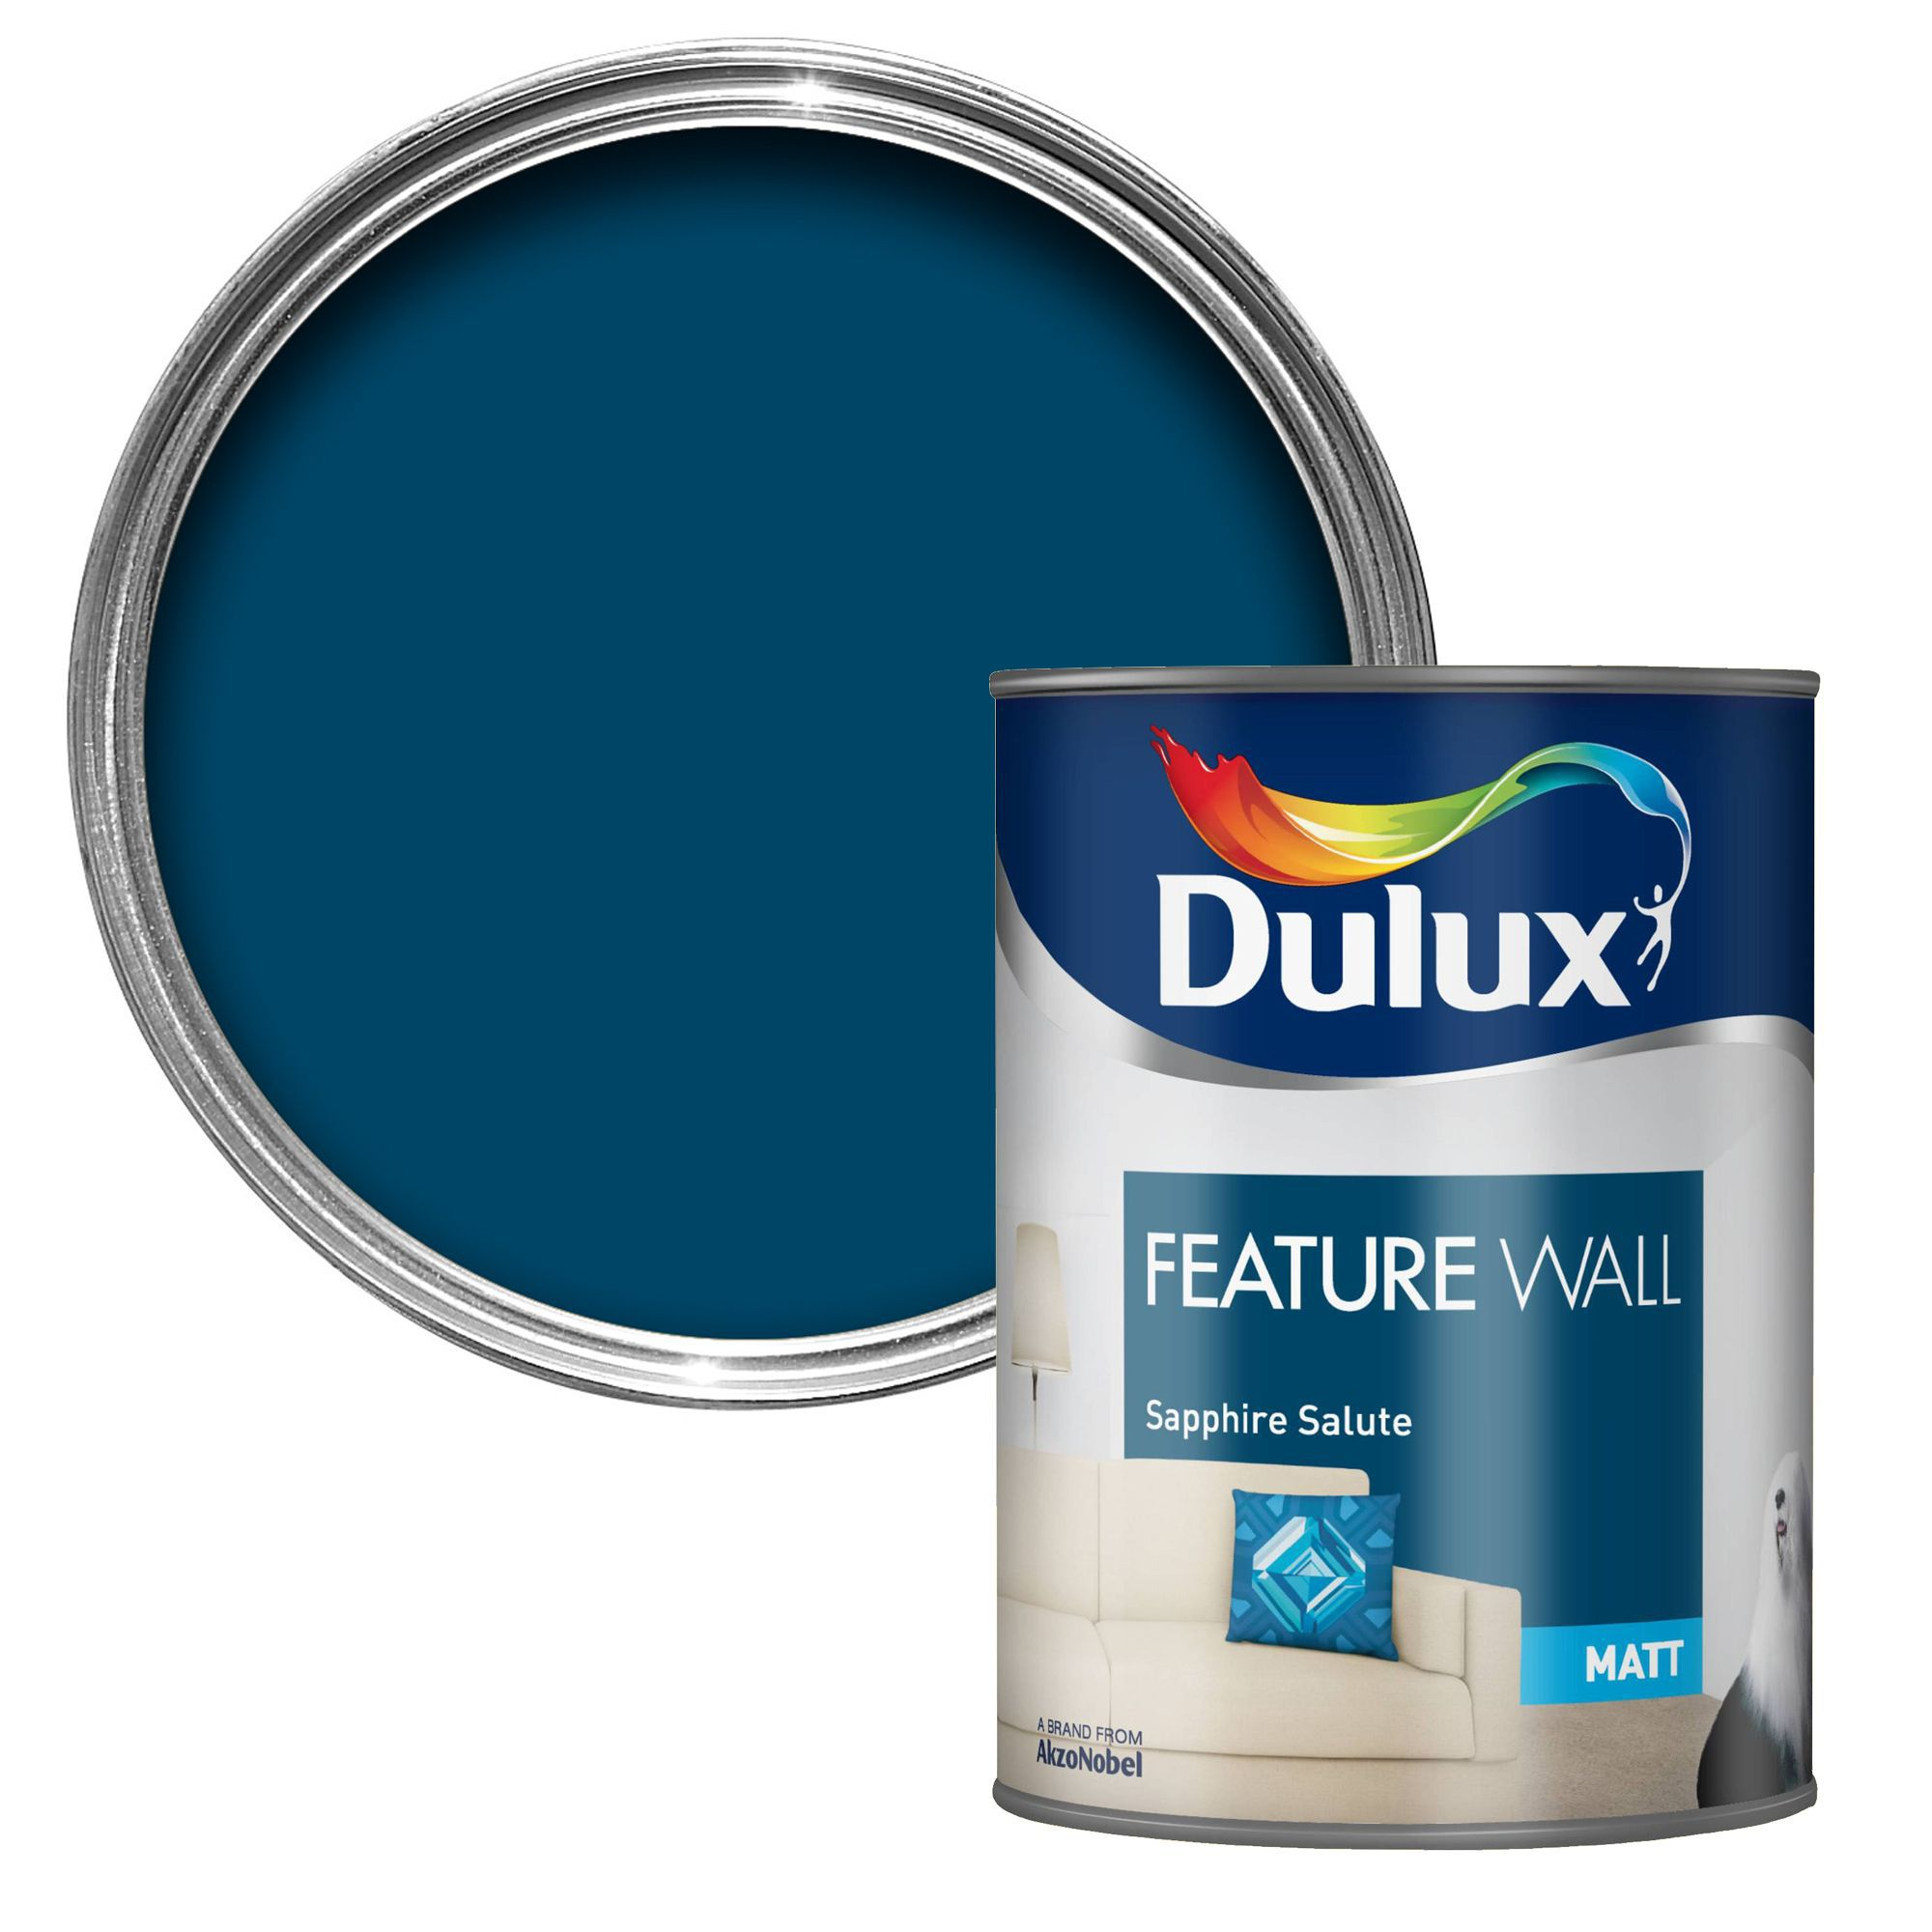 Dulux Feature Wall Sapphire Salute Matt Emulsion Paint 1